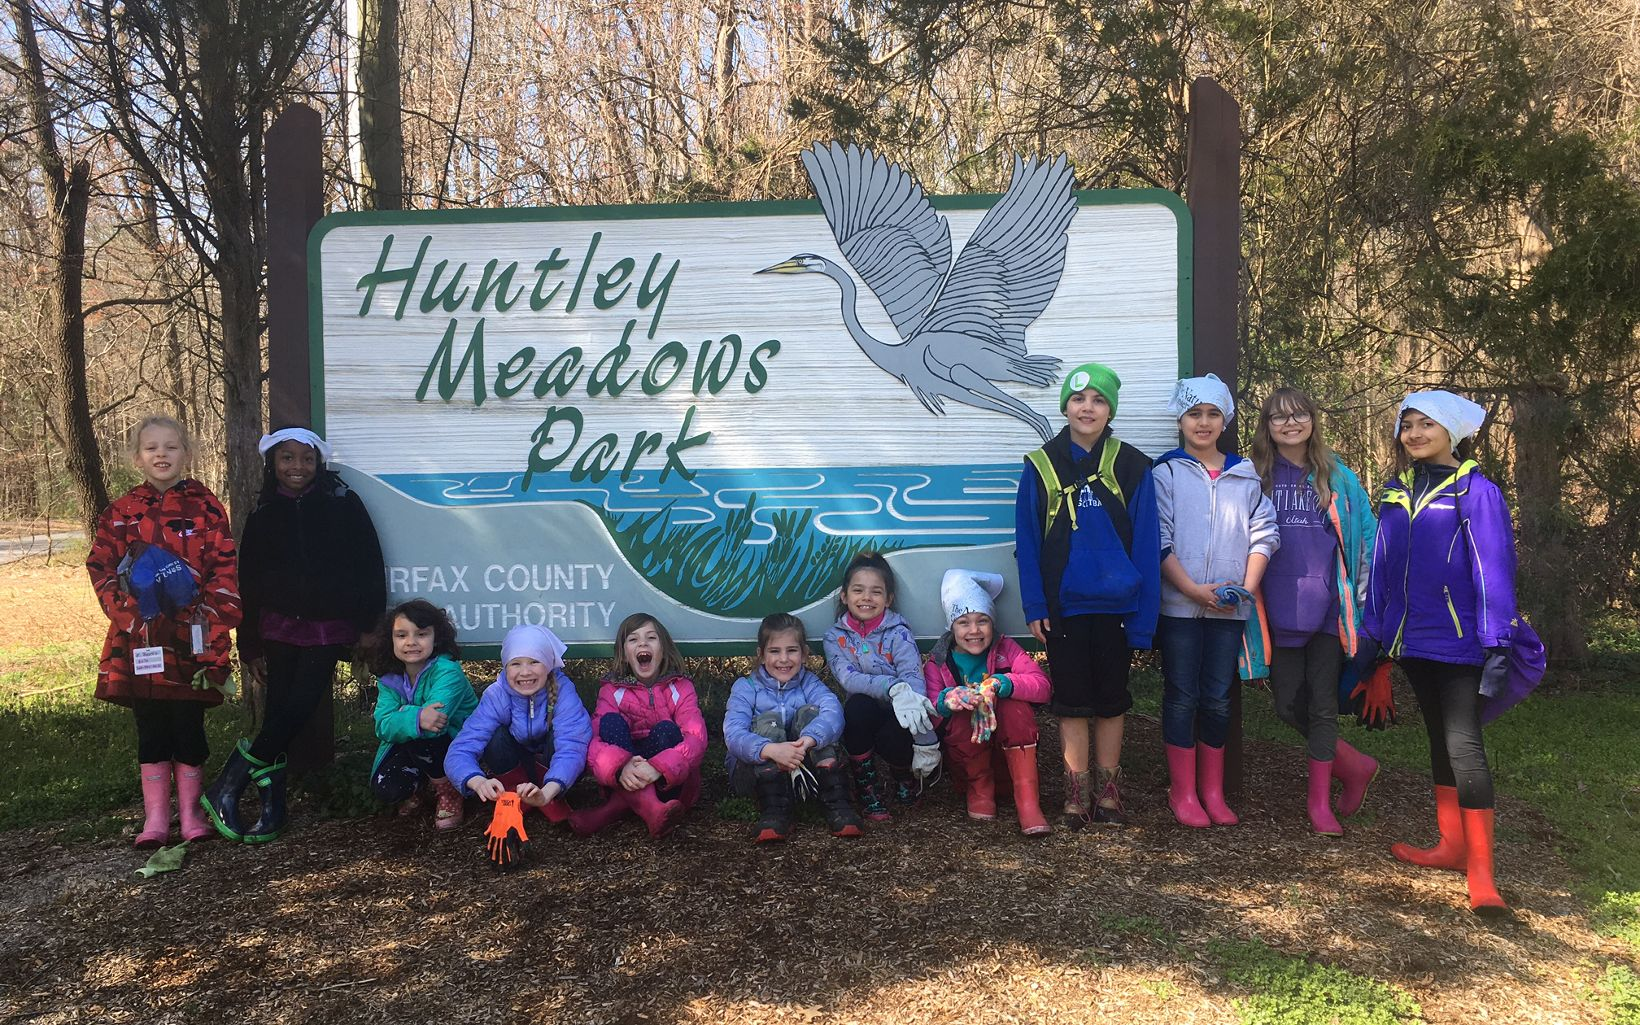 Girl Scout troops 52014 and 3446 from Springfield, VA collected trash in and around a stream in Huntley Meadows Park.